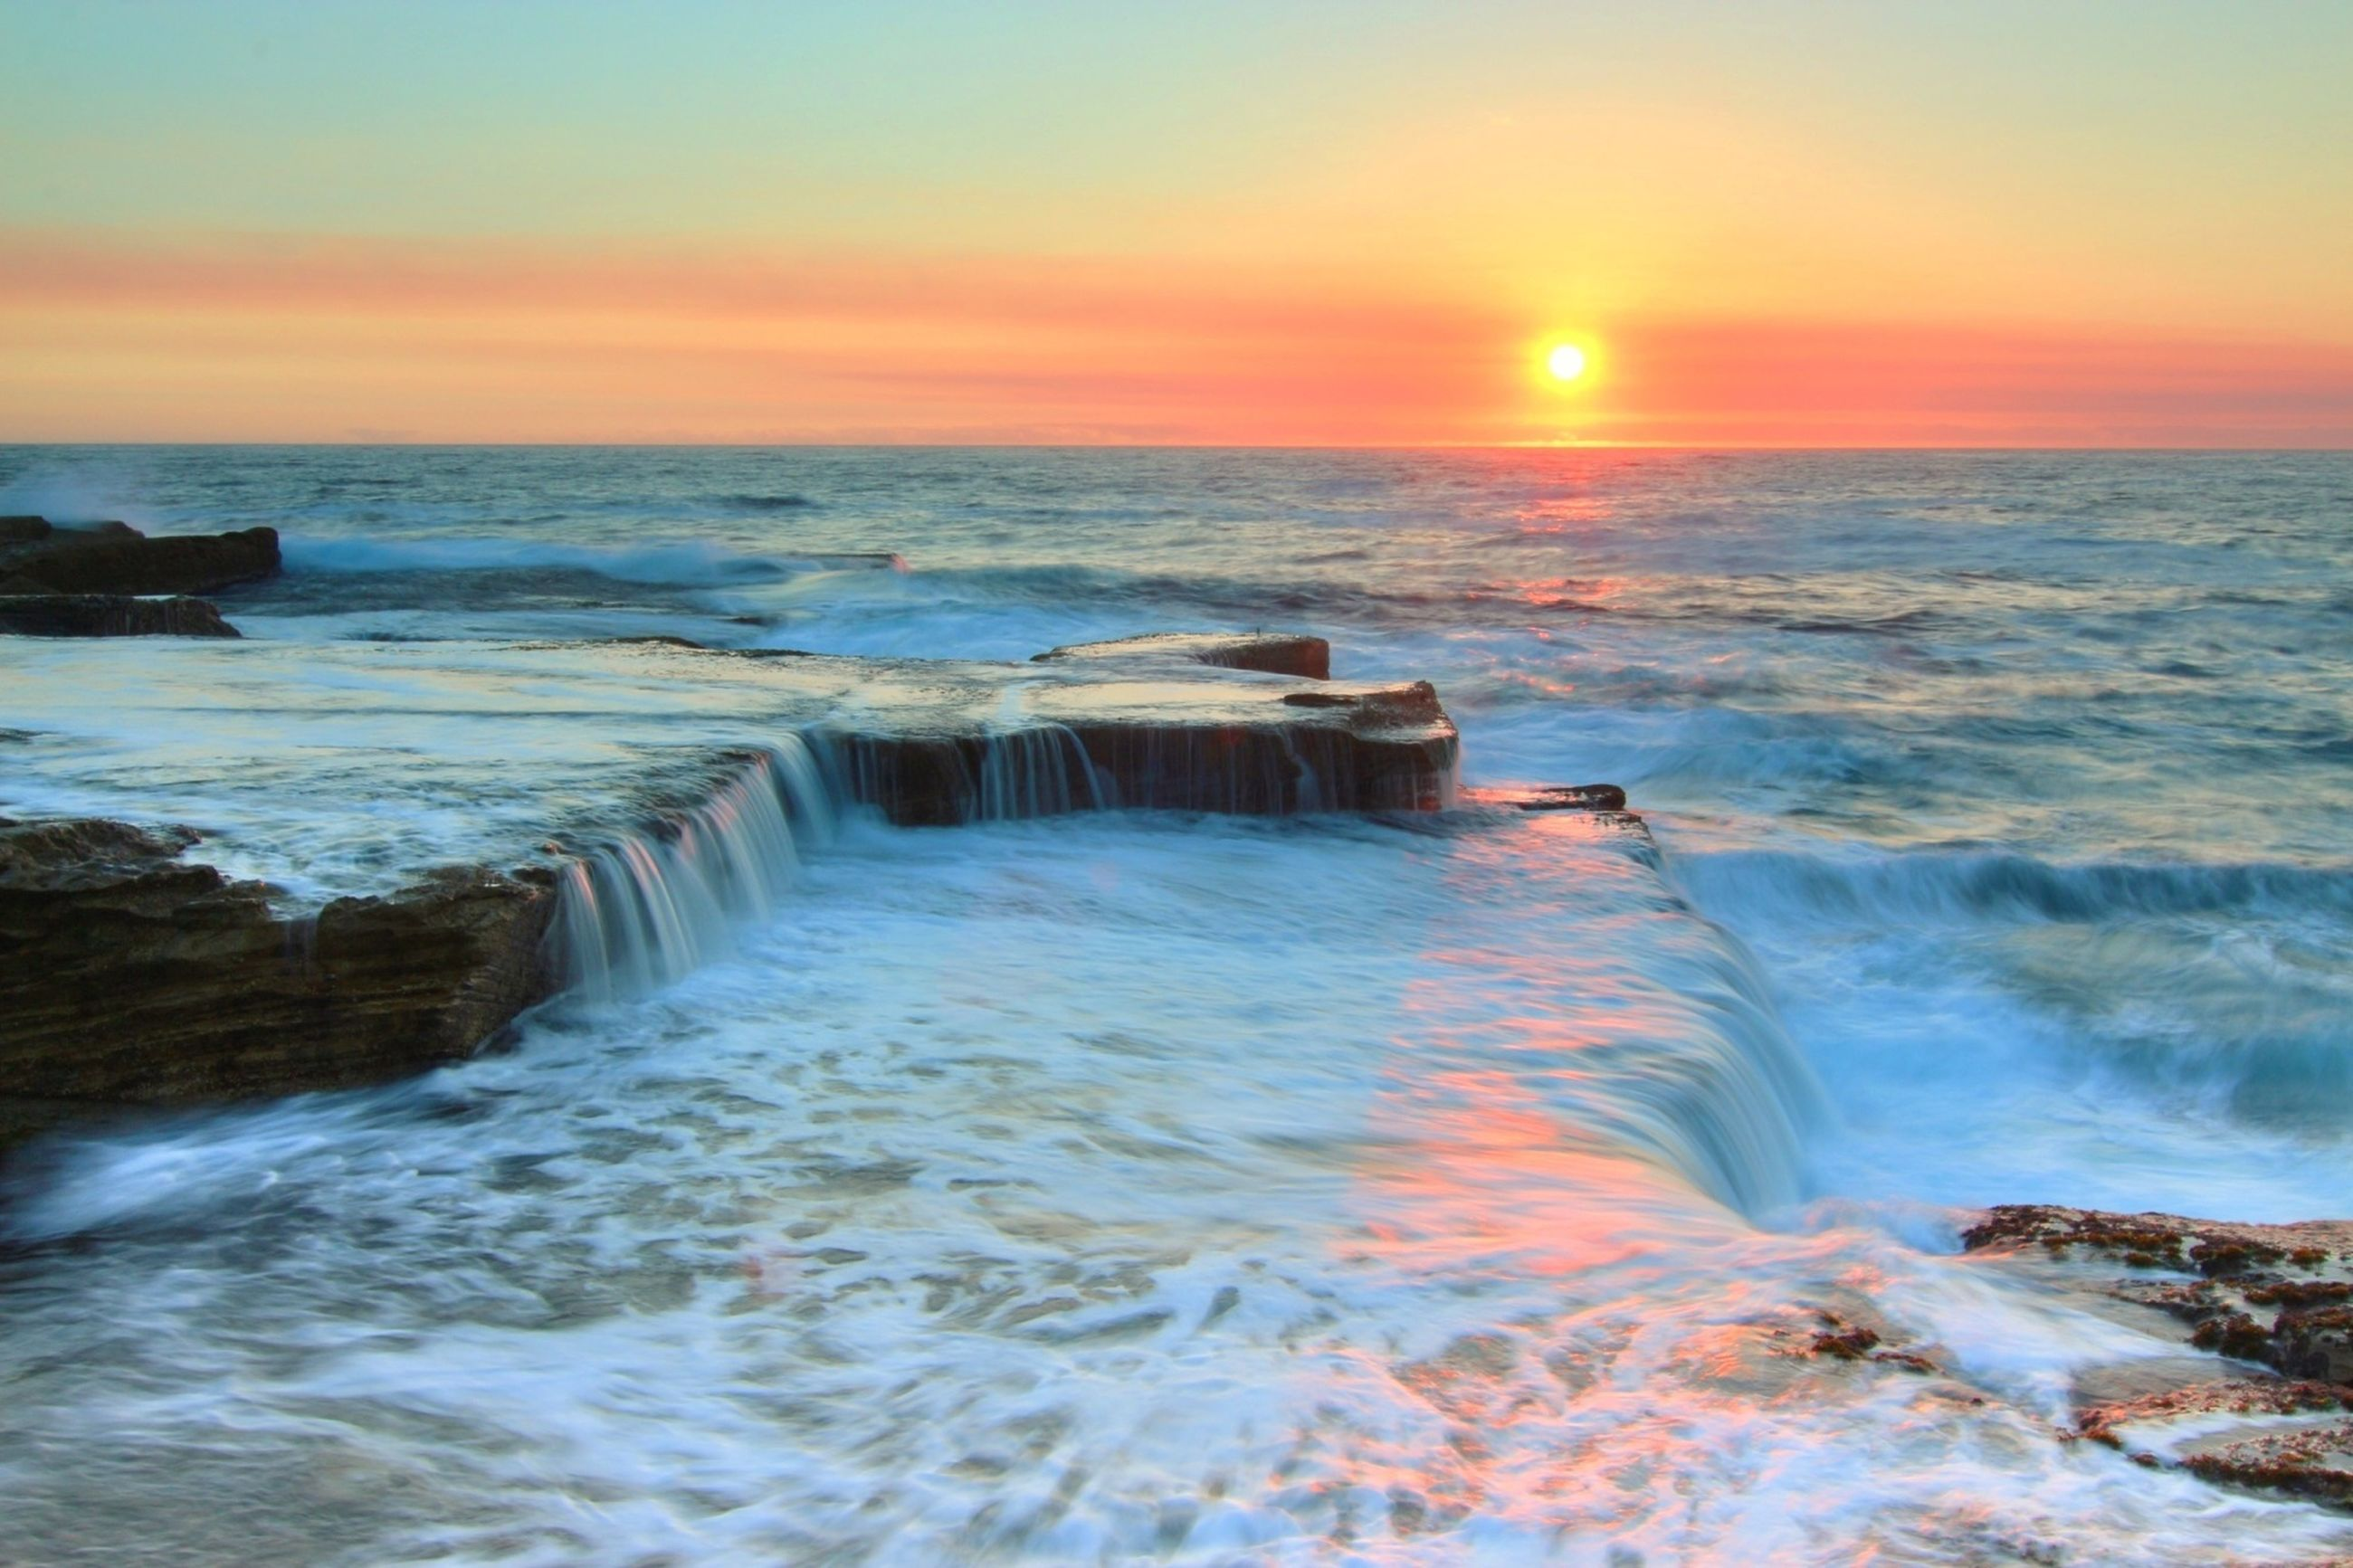 water, sea, sunset, scenics, horizon over water, beauty in nature, wave, motion, tranquil scene, surf, sky, rock - object, nature, orange color, idyllic, tranquility, beach, rock formation, long exposure, shore